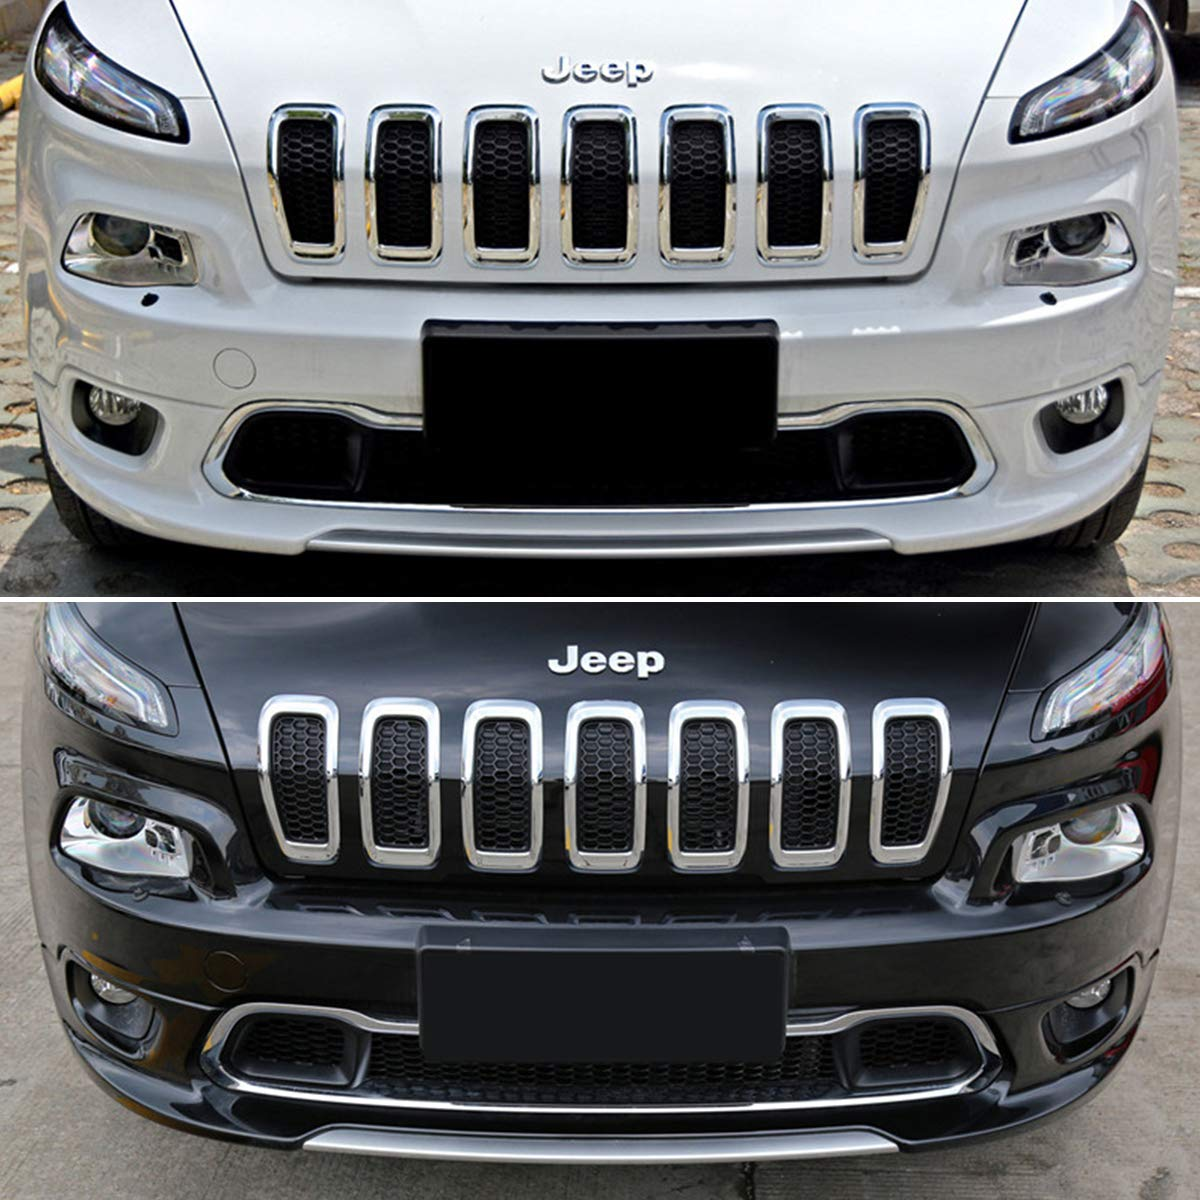 Gray and Black XBEEK 2014-2018 Jeep Cherokee Gloss Front Grille Grill Inserts Covers 7pcs